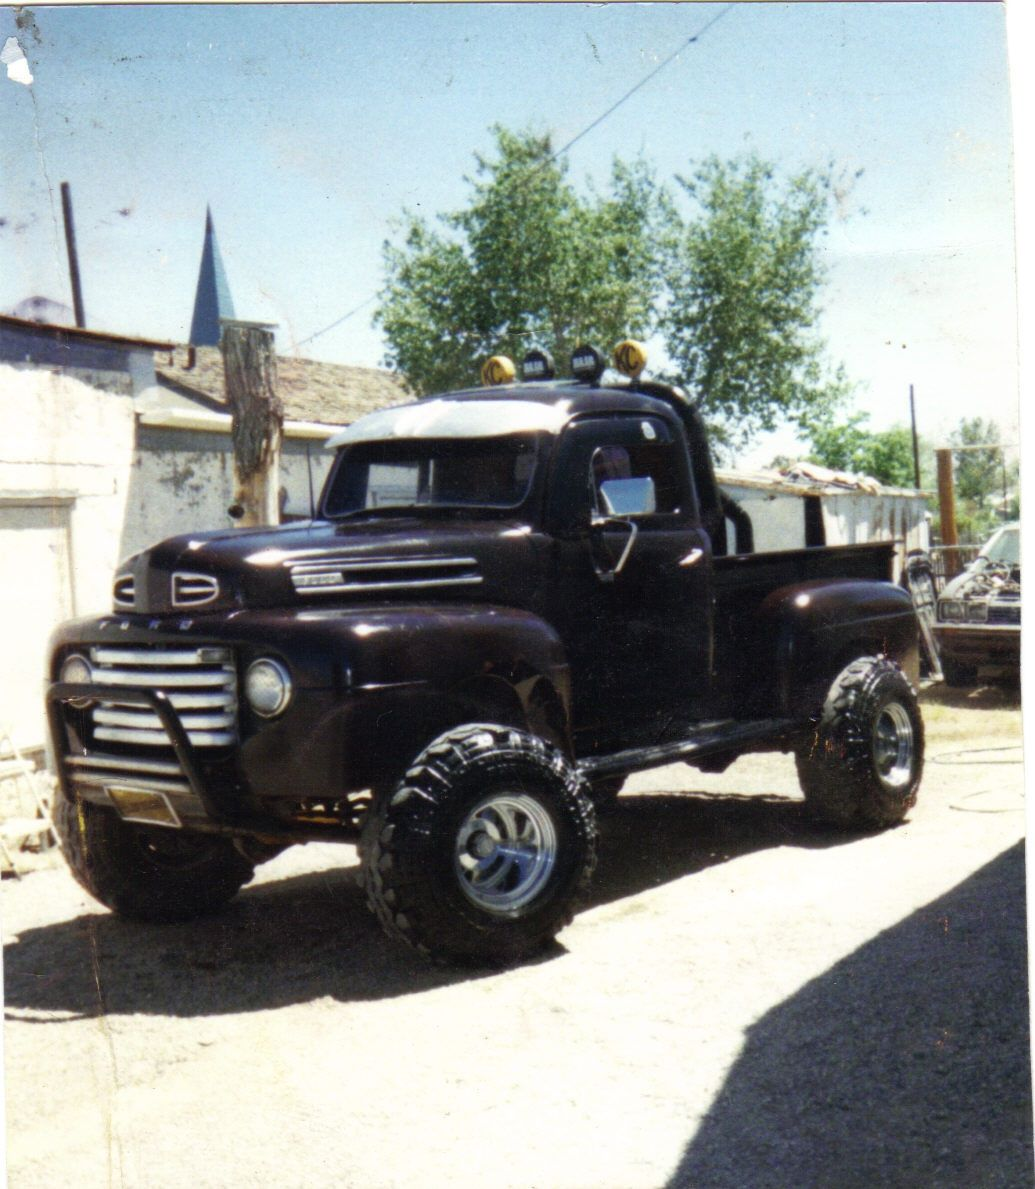 My 1950 Ford F 1 4x4 Trucks Ford Trucks Classic Cars Trucks